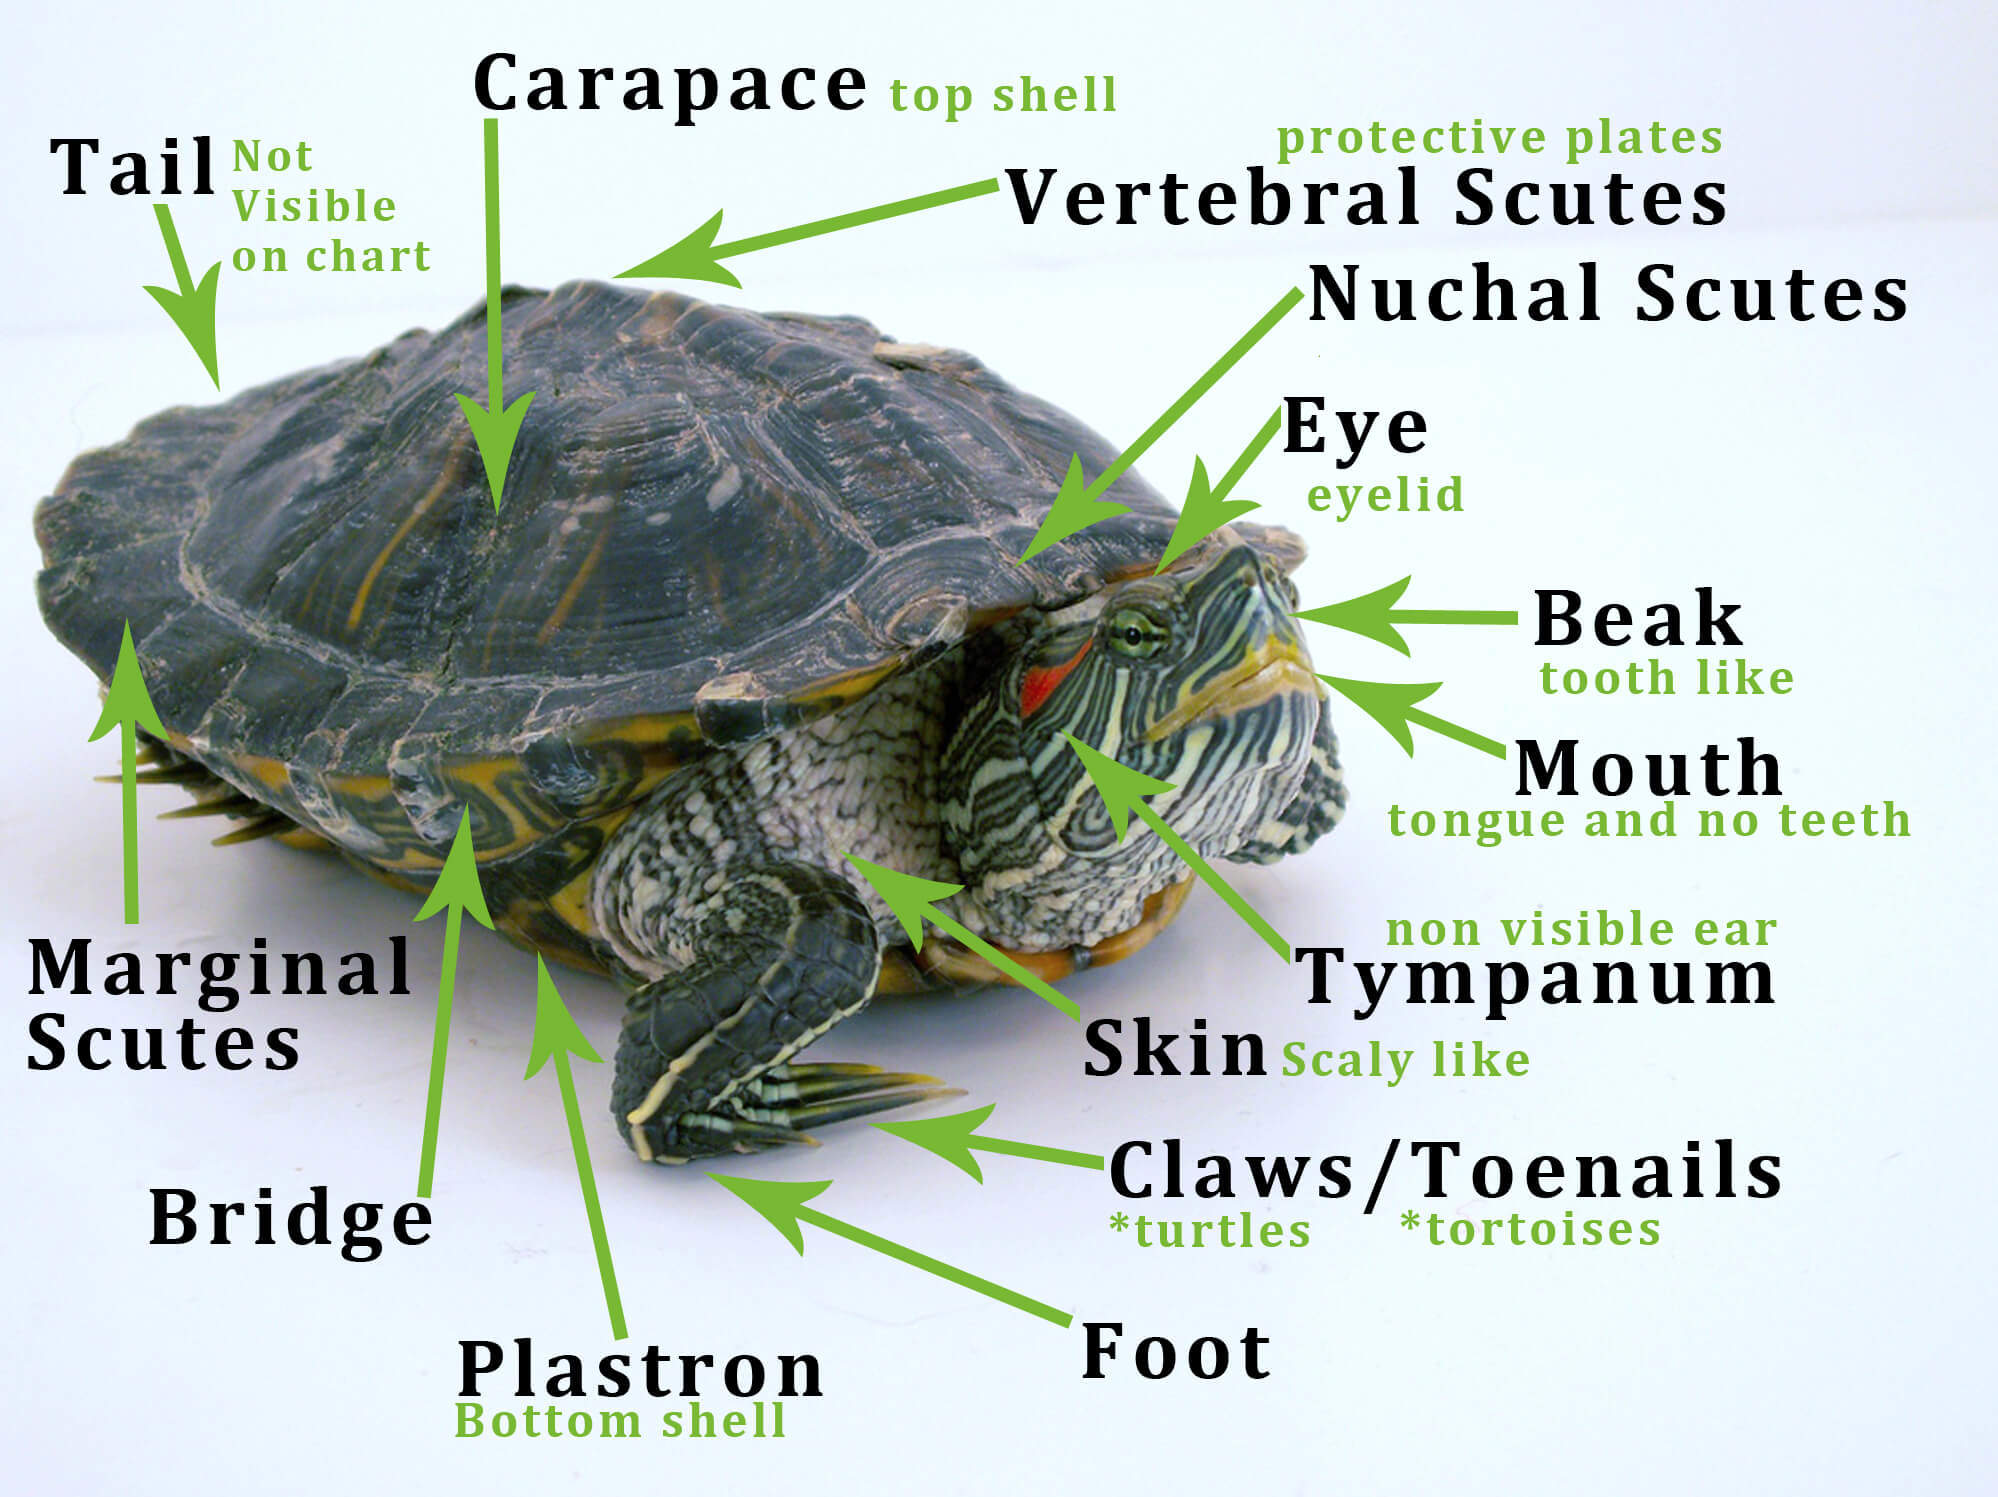 turtle anatomy diagram ford transit central locking wiring types of turtles and tortoises how to take care a